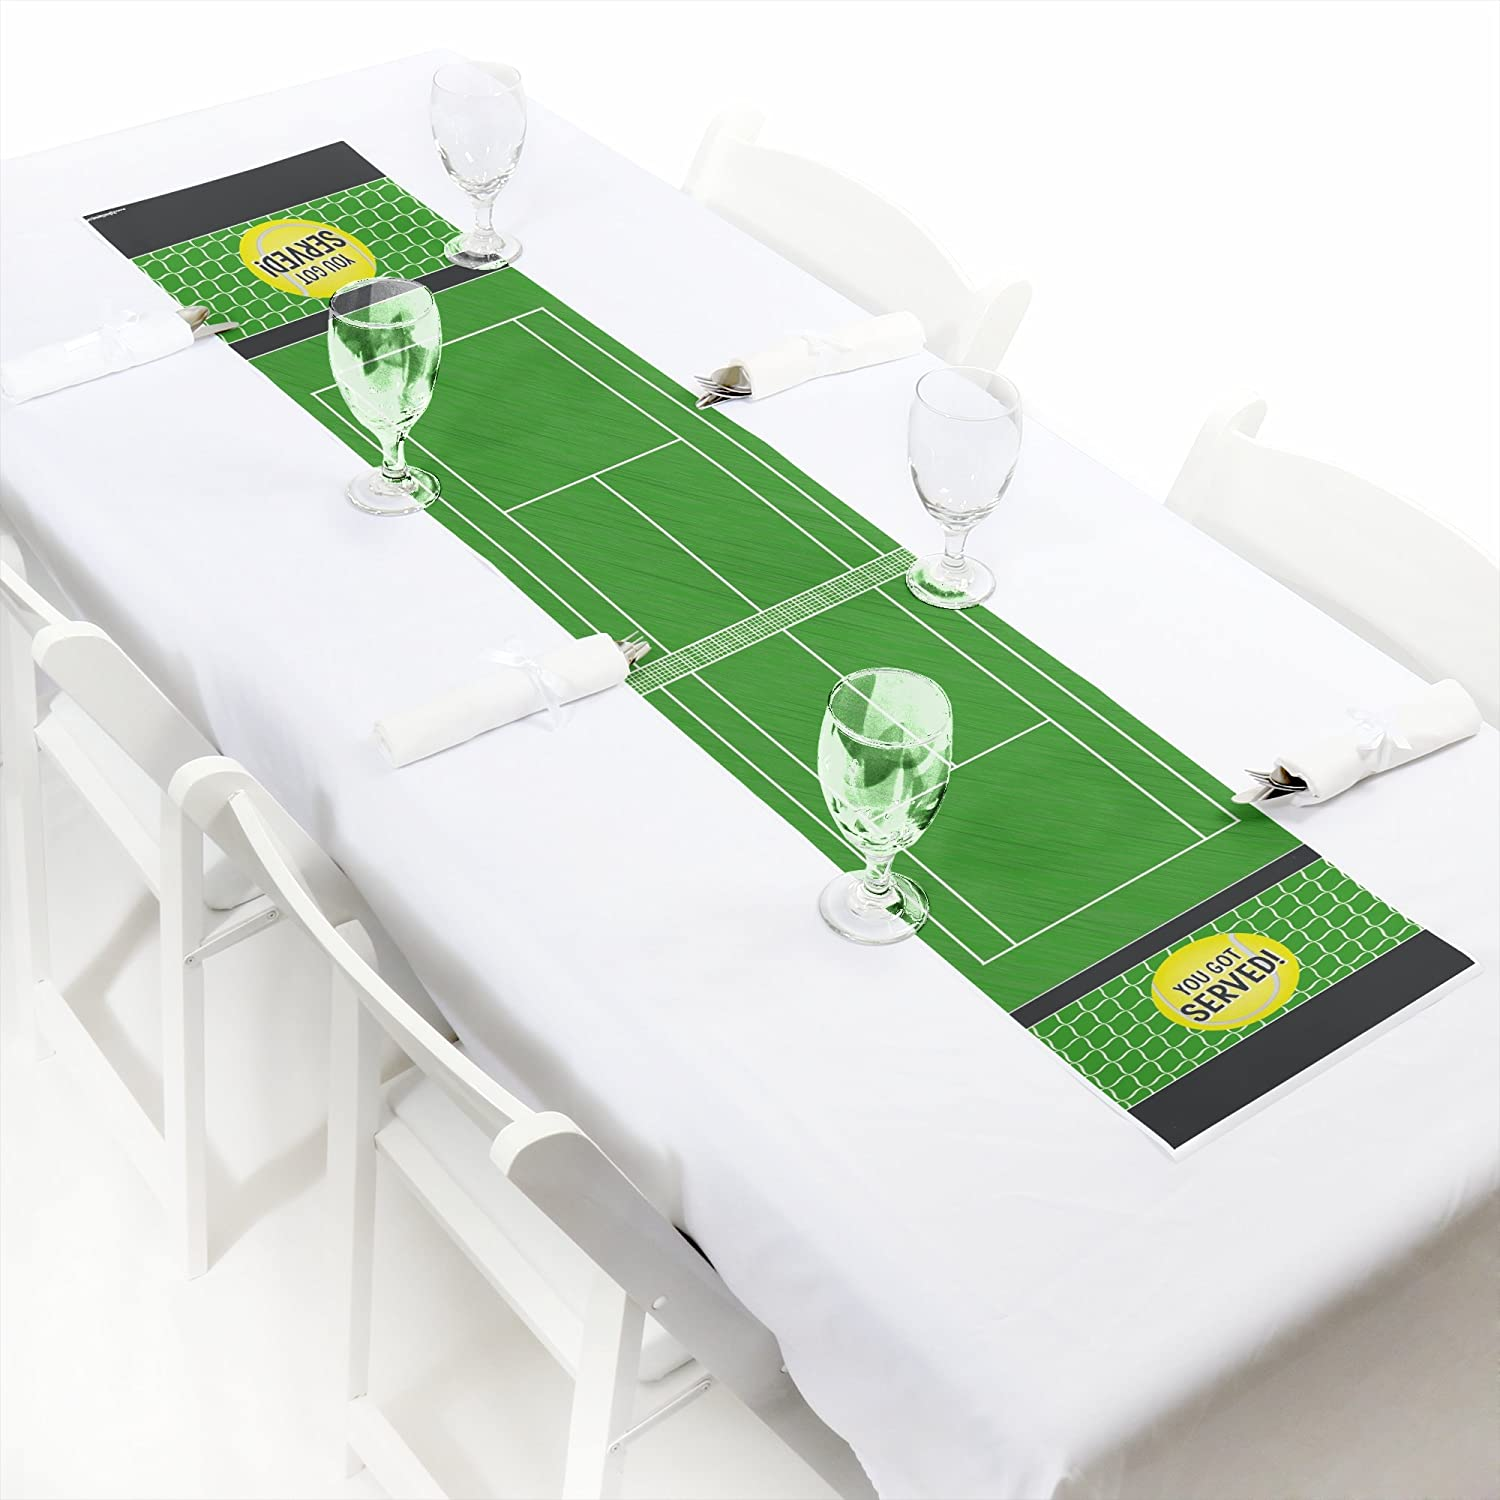 You Got Served Tennis Petite Baby Shower or Tennis Ball Birthday Party Paper Table Runner 30cm x 150cm B079SBP3WB